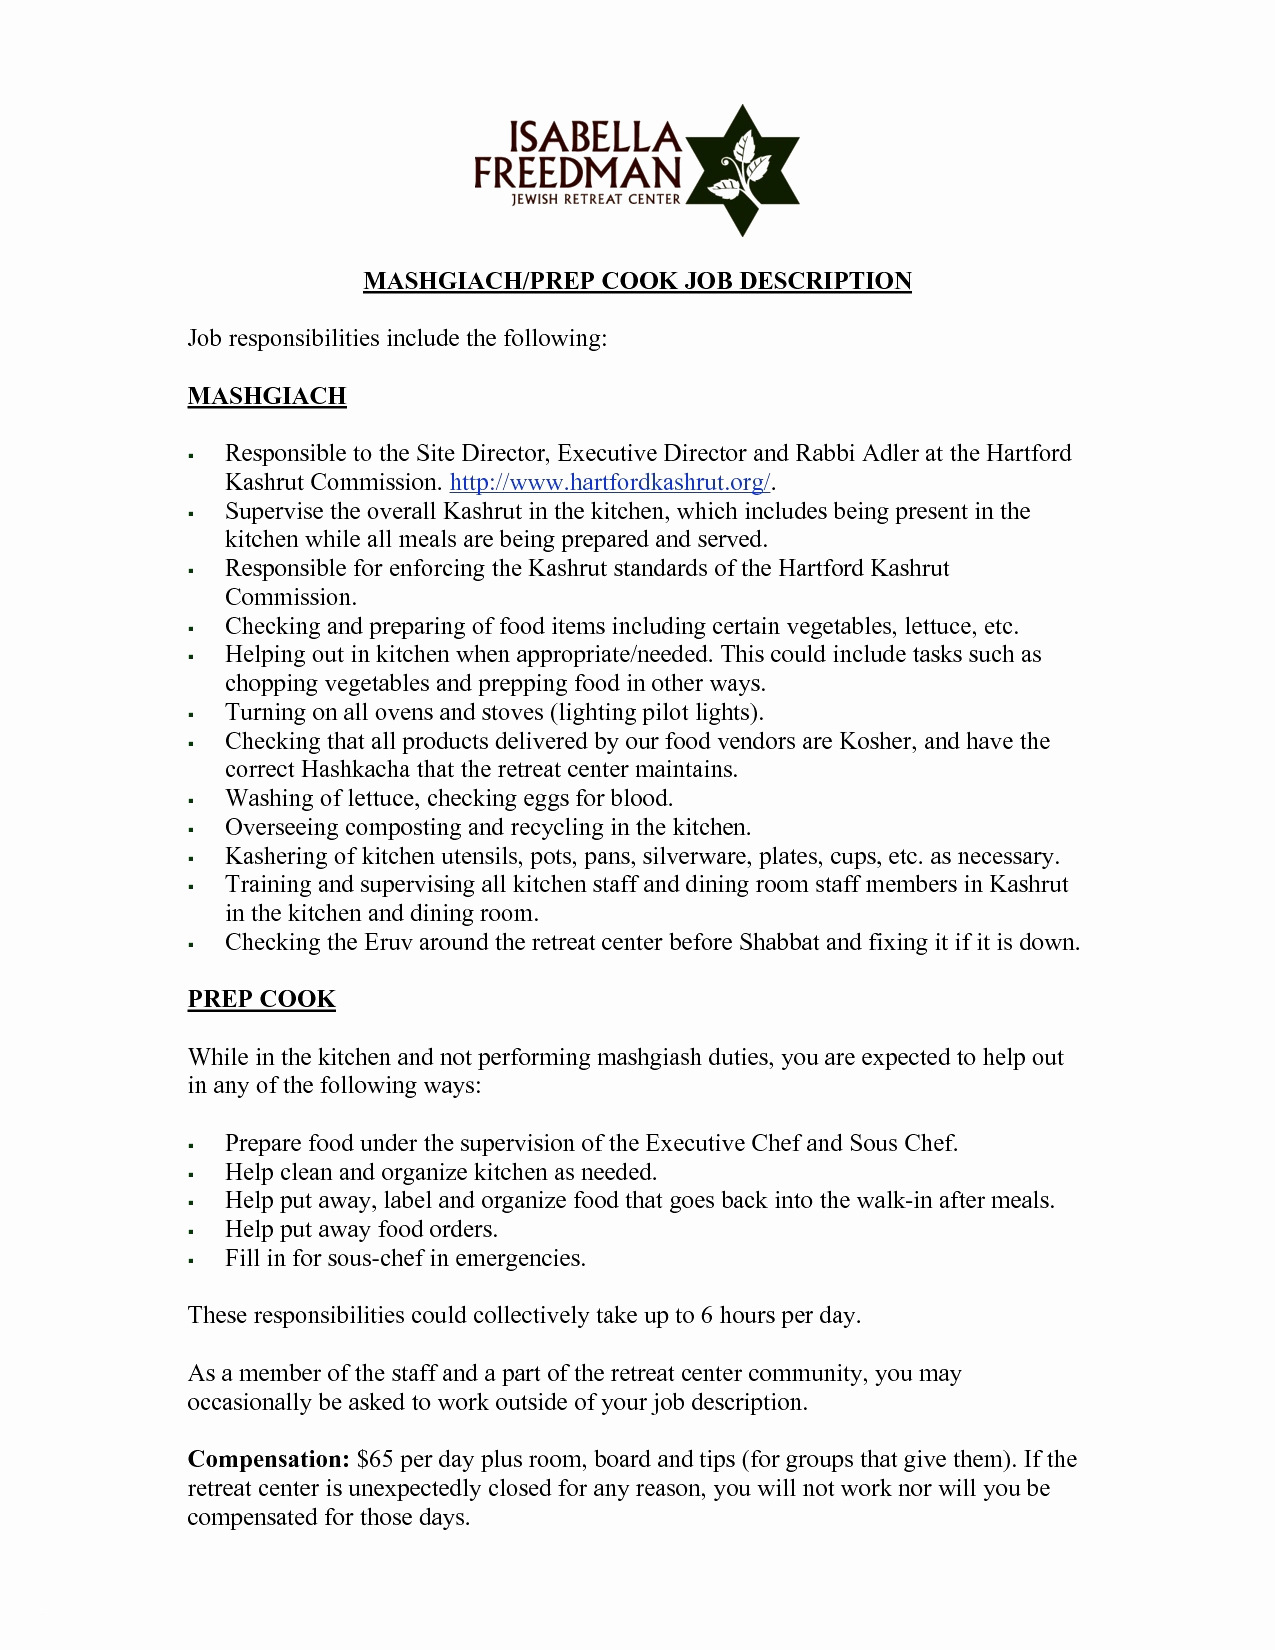 Cover Letter Template Fill In - Basic Resume Outline Unique Resume and Cover Letter Template Fresh